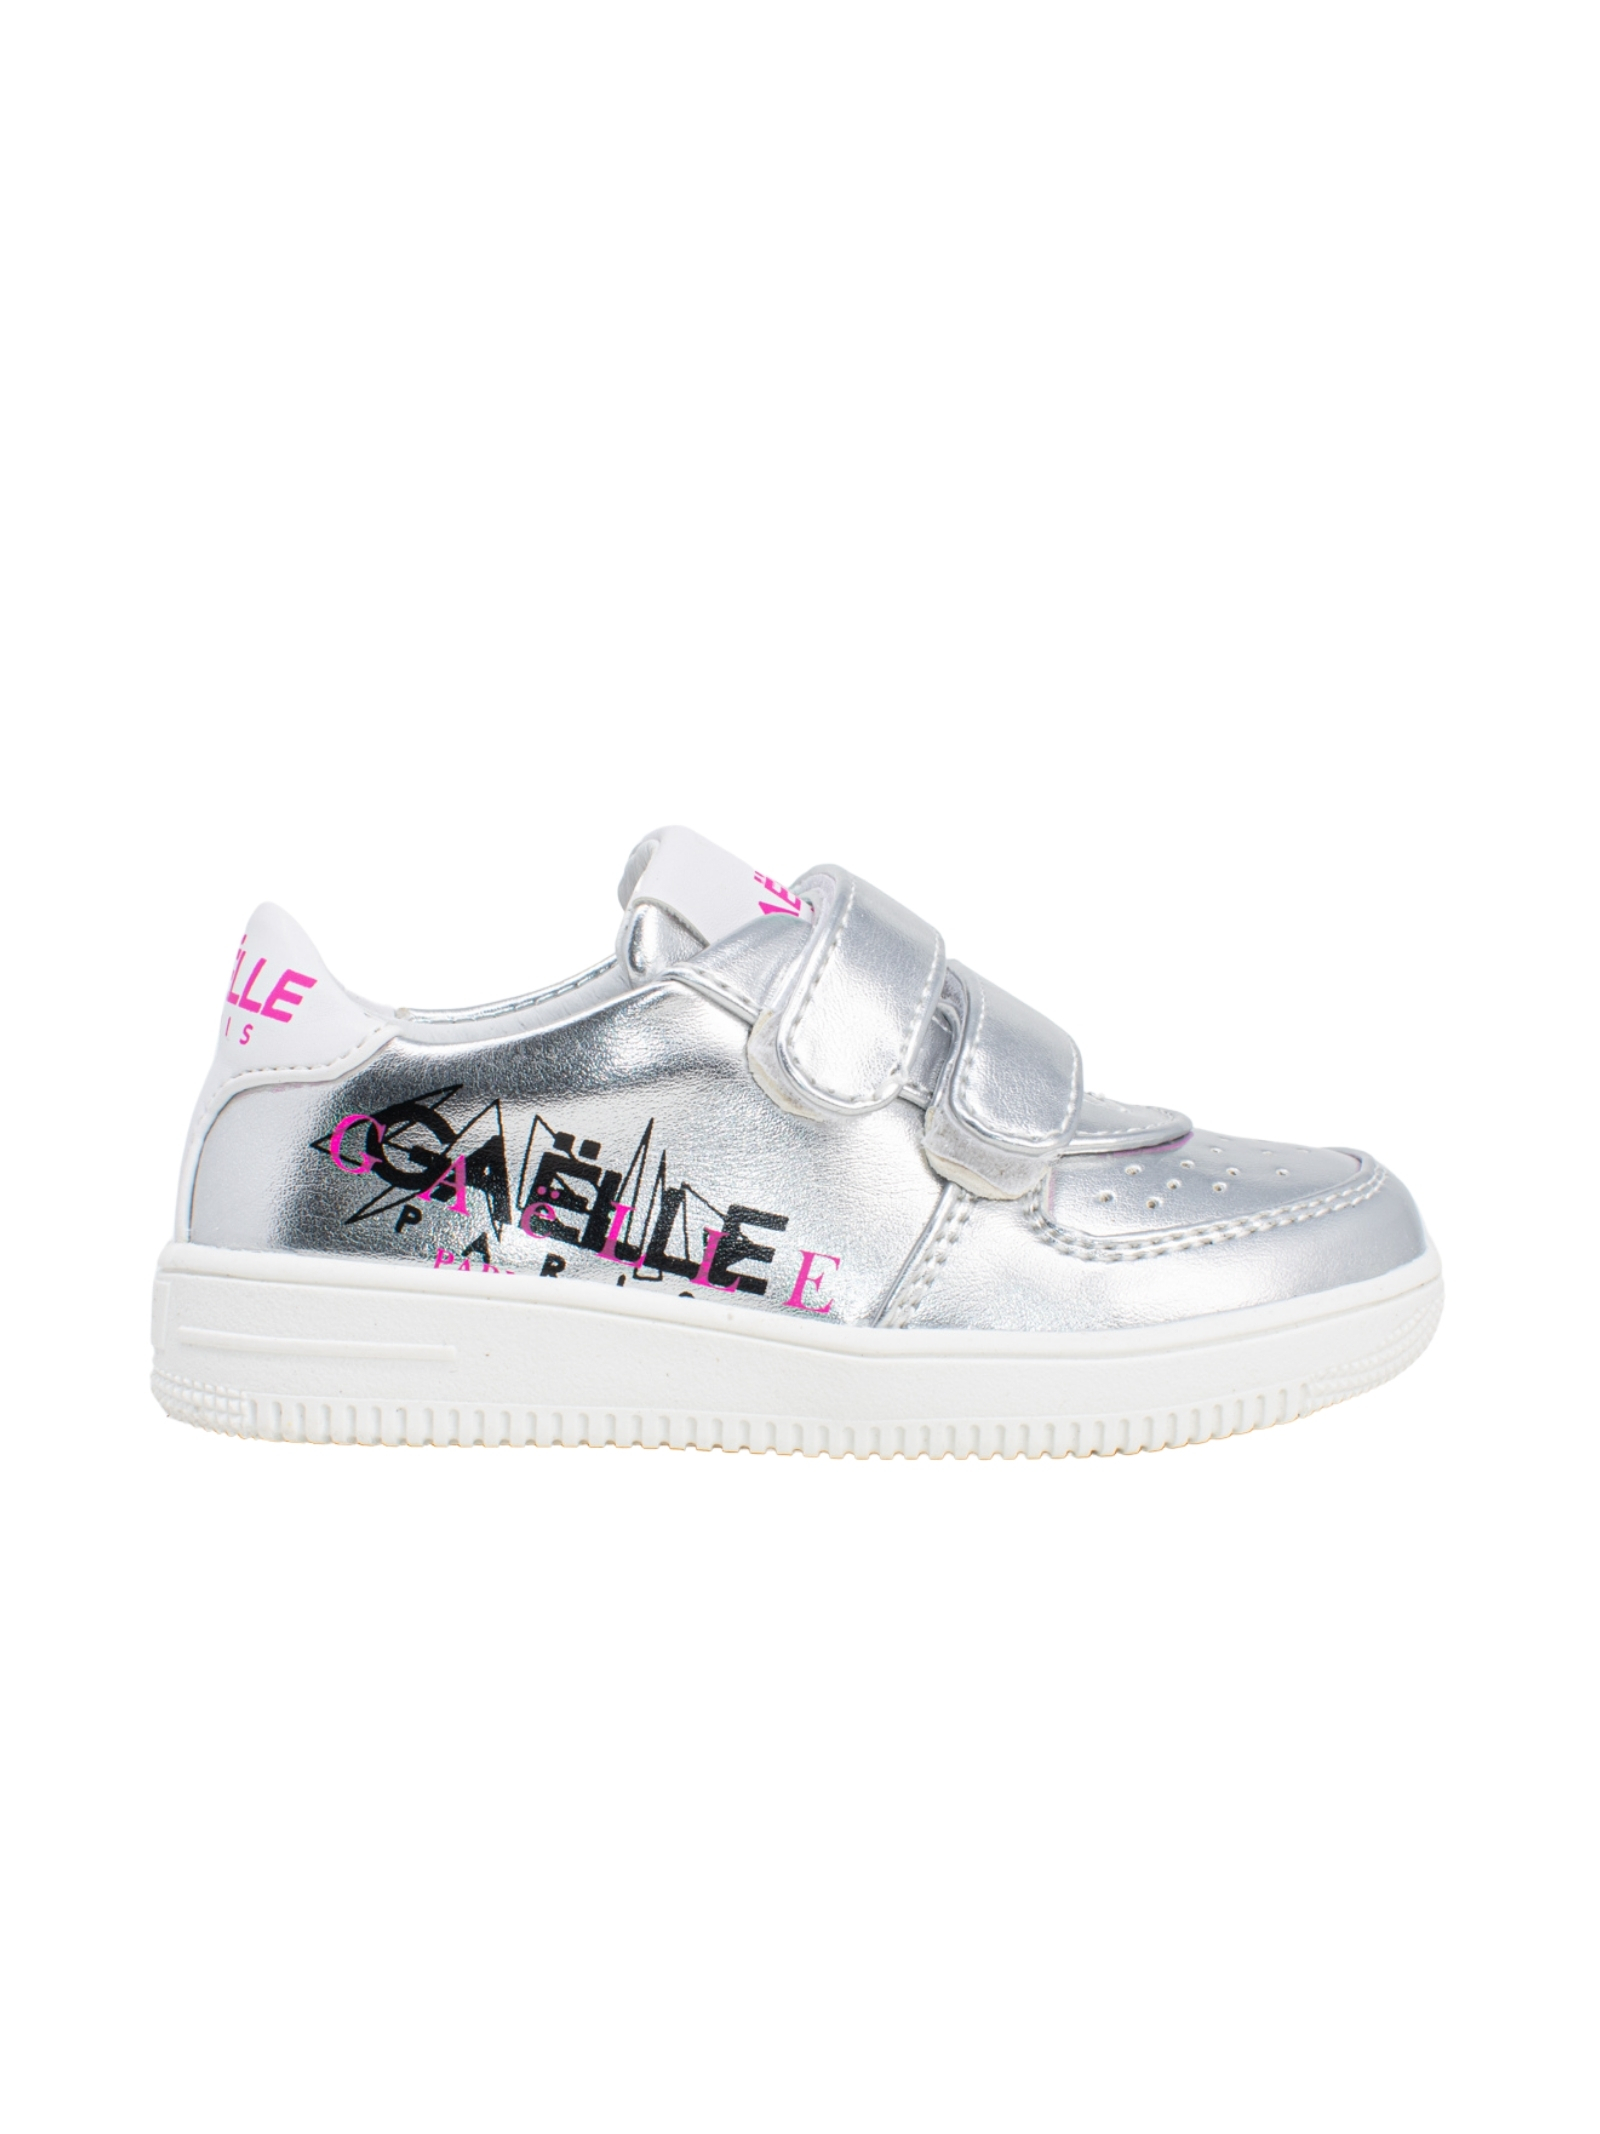 Sneakers Bambina SP Silver GAËLLE PARIS KIDS | Sneakers | G640ARGENTO